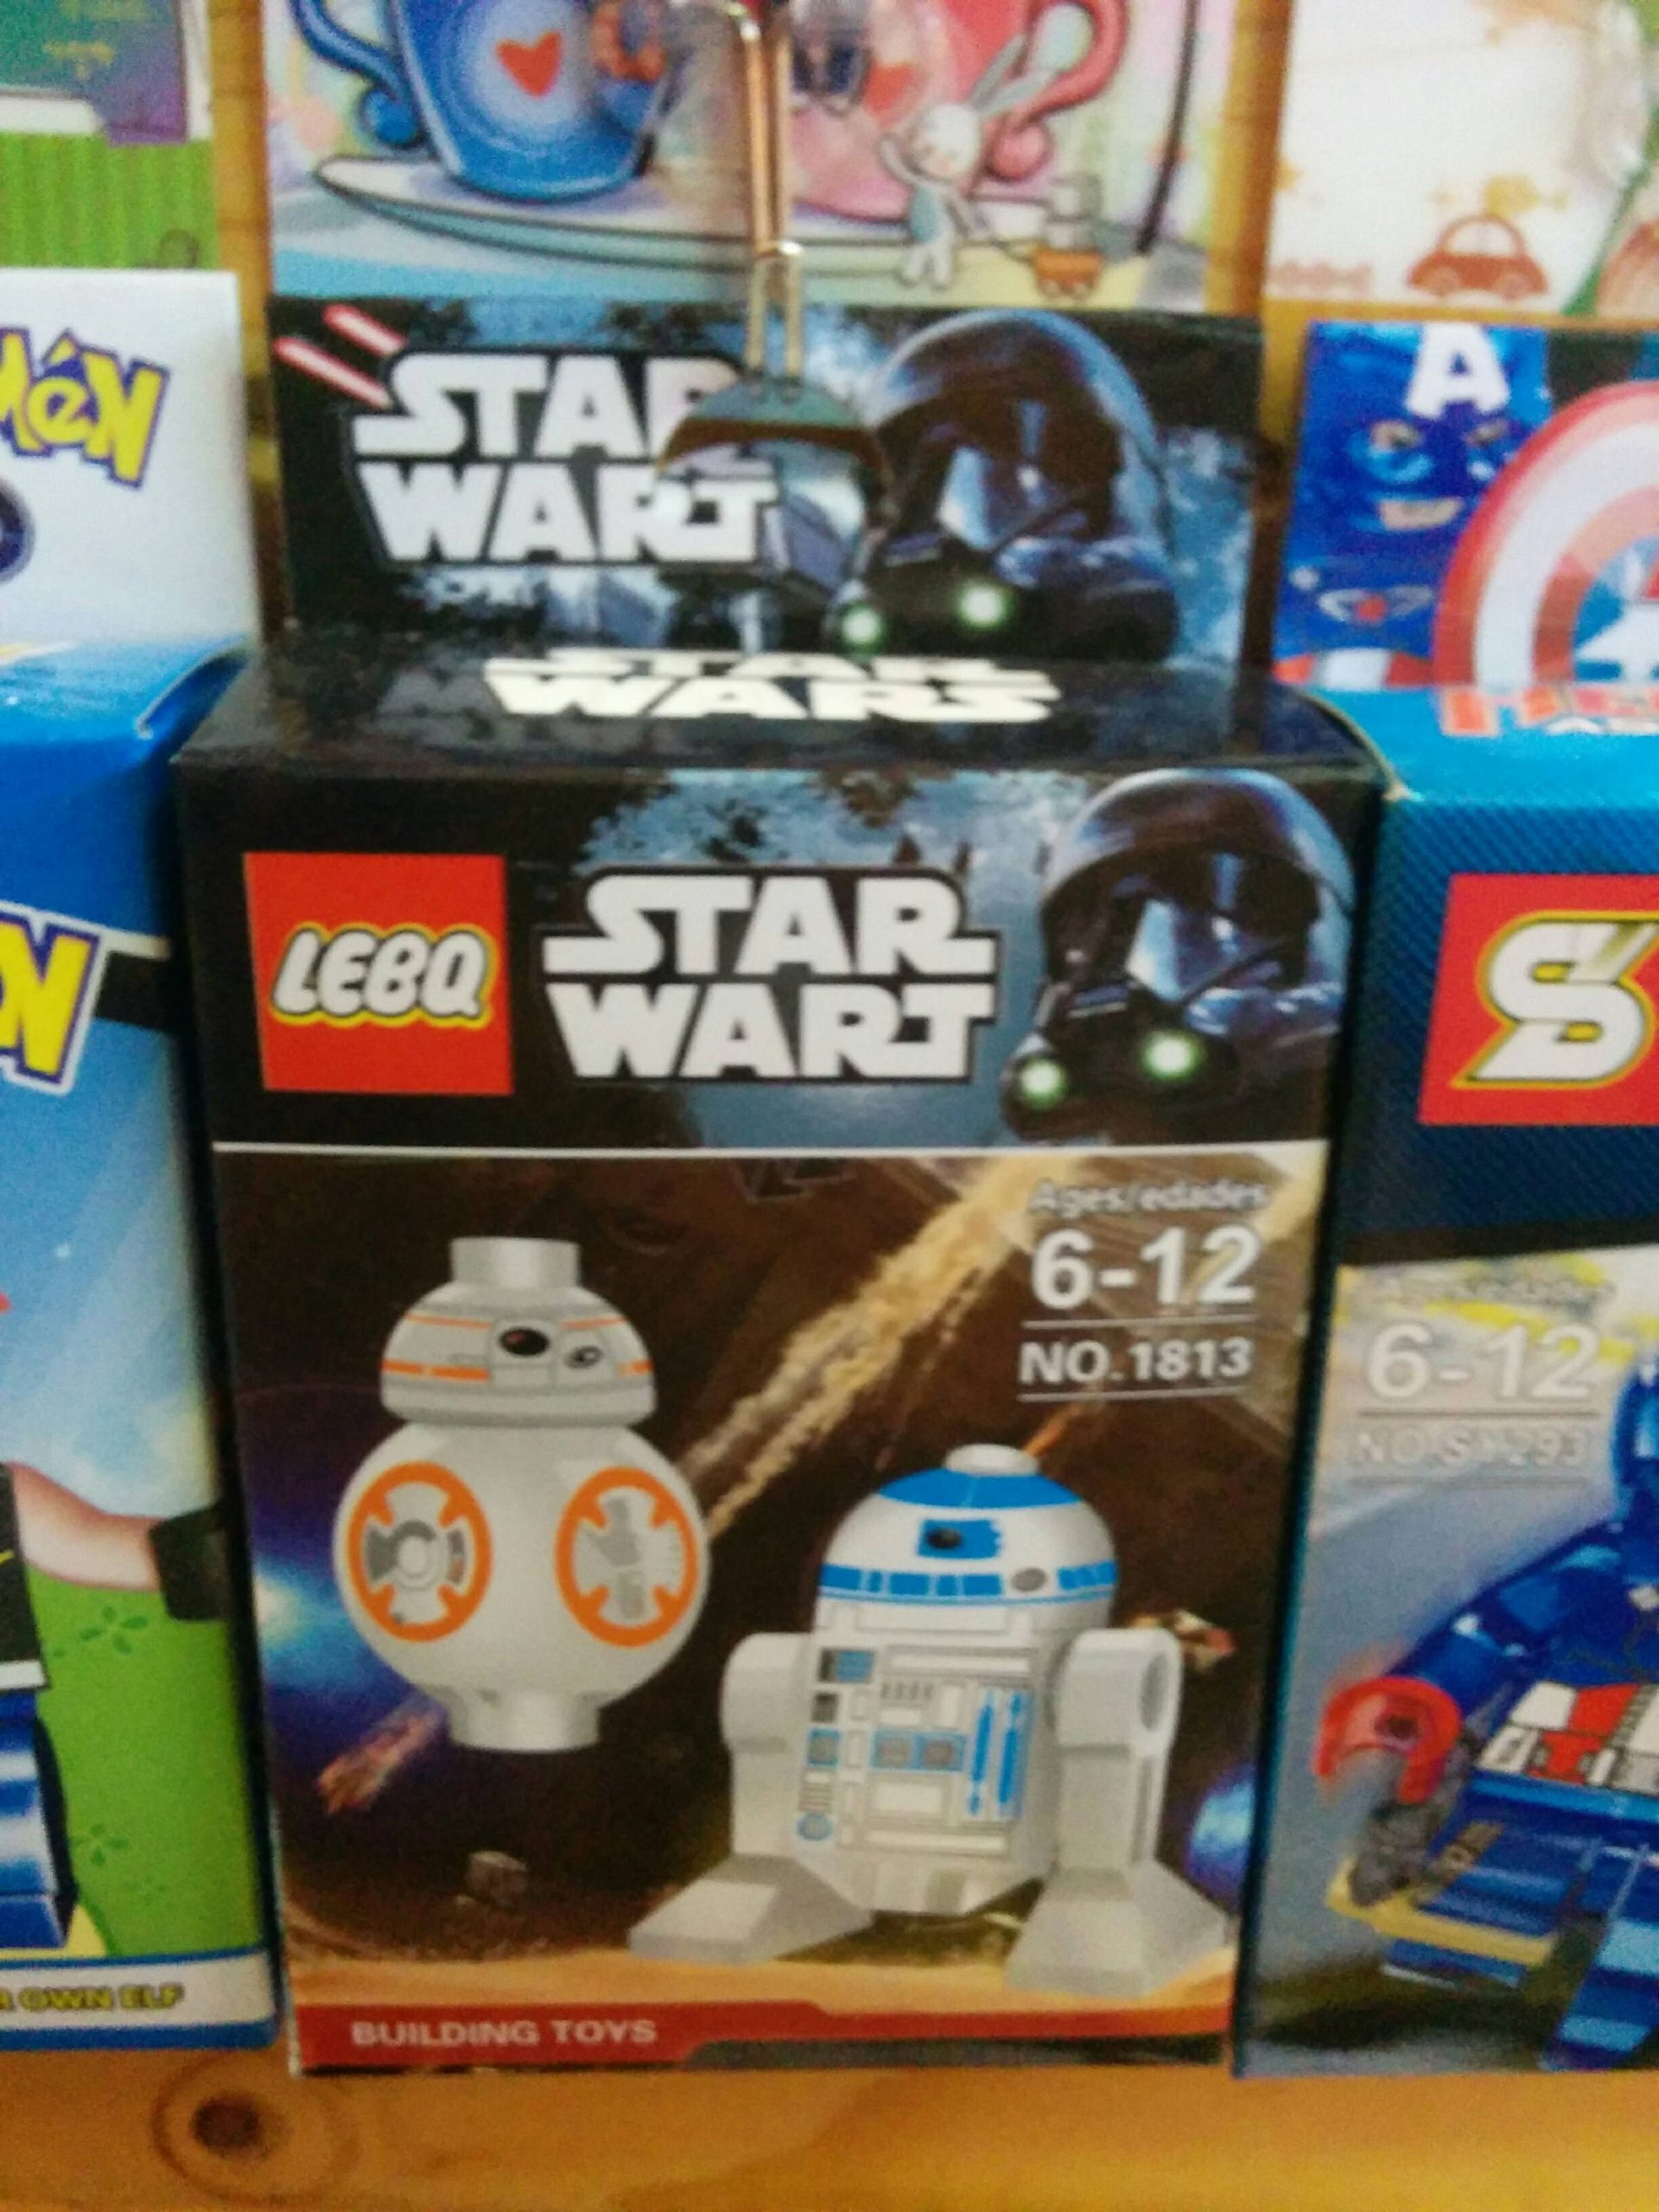 LEBQ? Star Wart? What the hell?